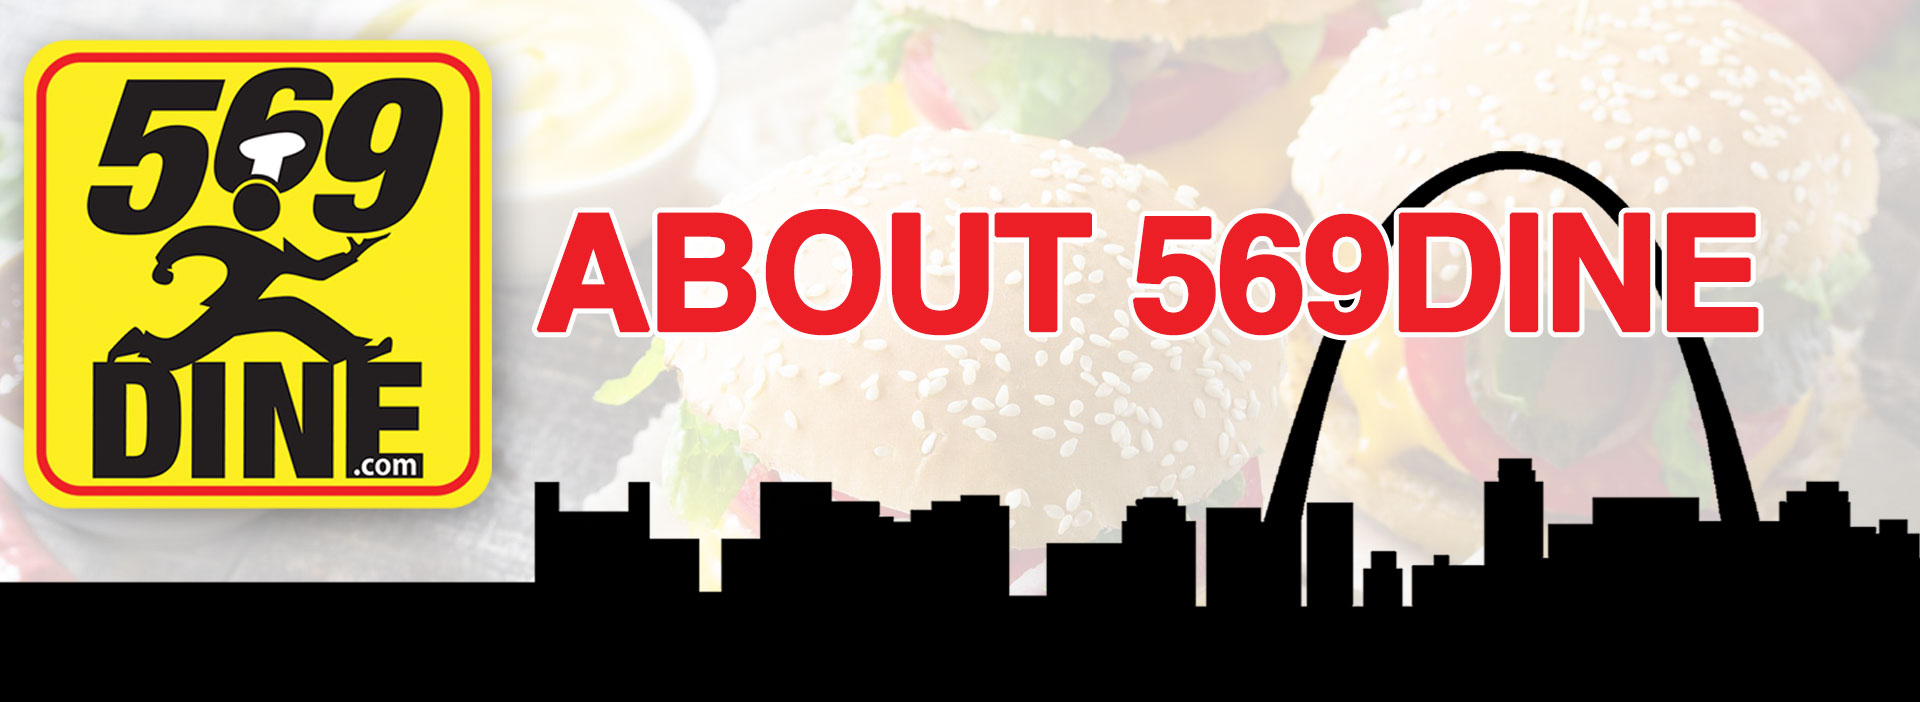 569 Dine St. Louis Food Delivery Fast Logo and Arch Graphic About